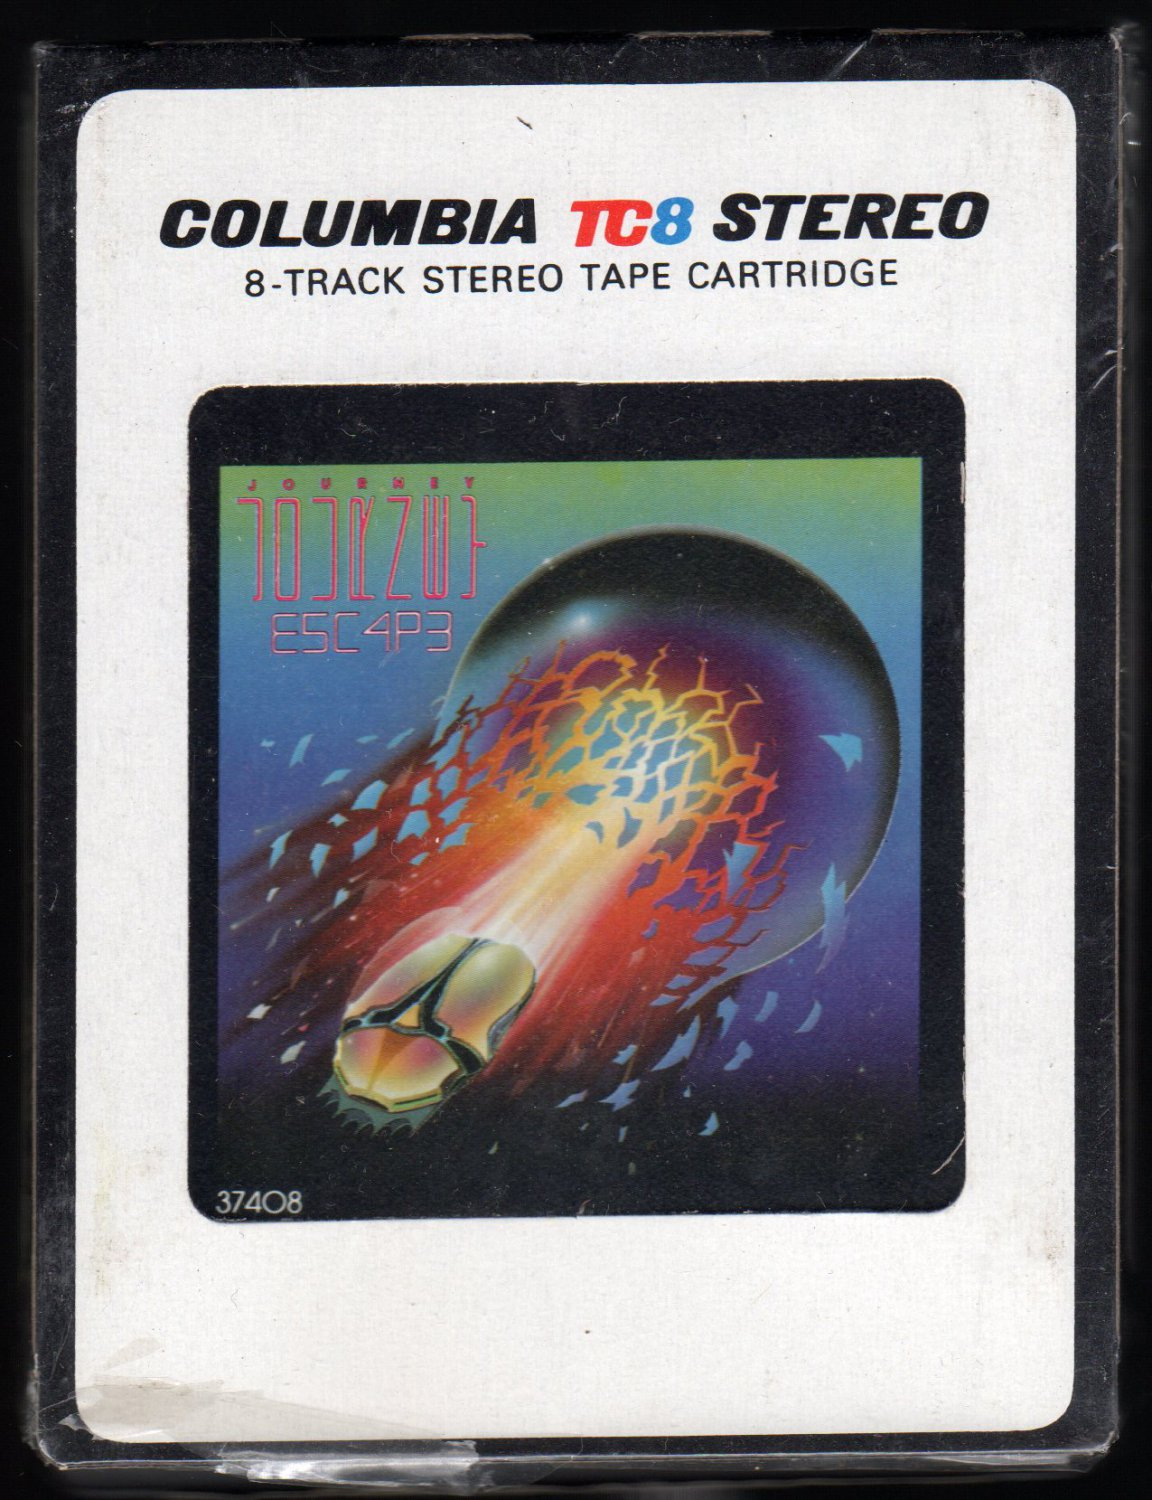 Journey - Escape 1981 CBS A19A 8-TRACK TAPE